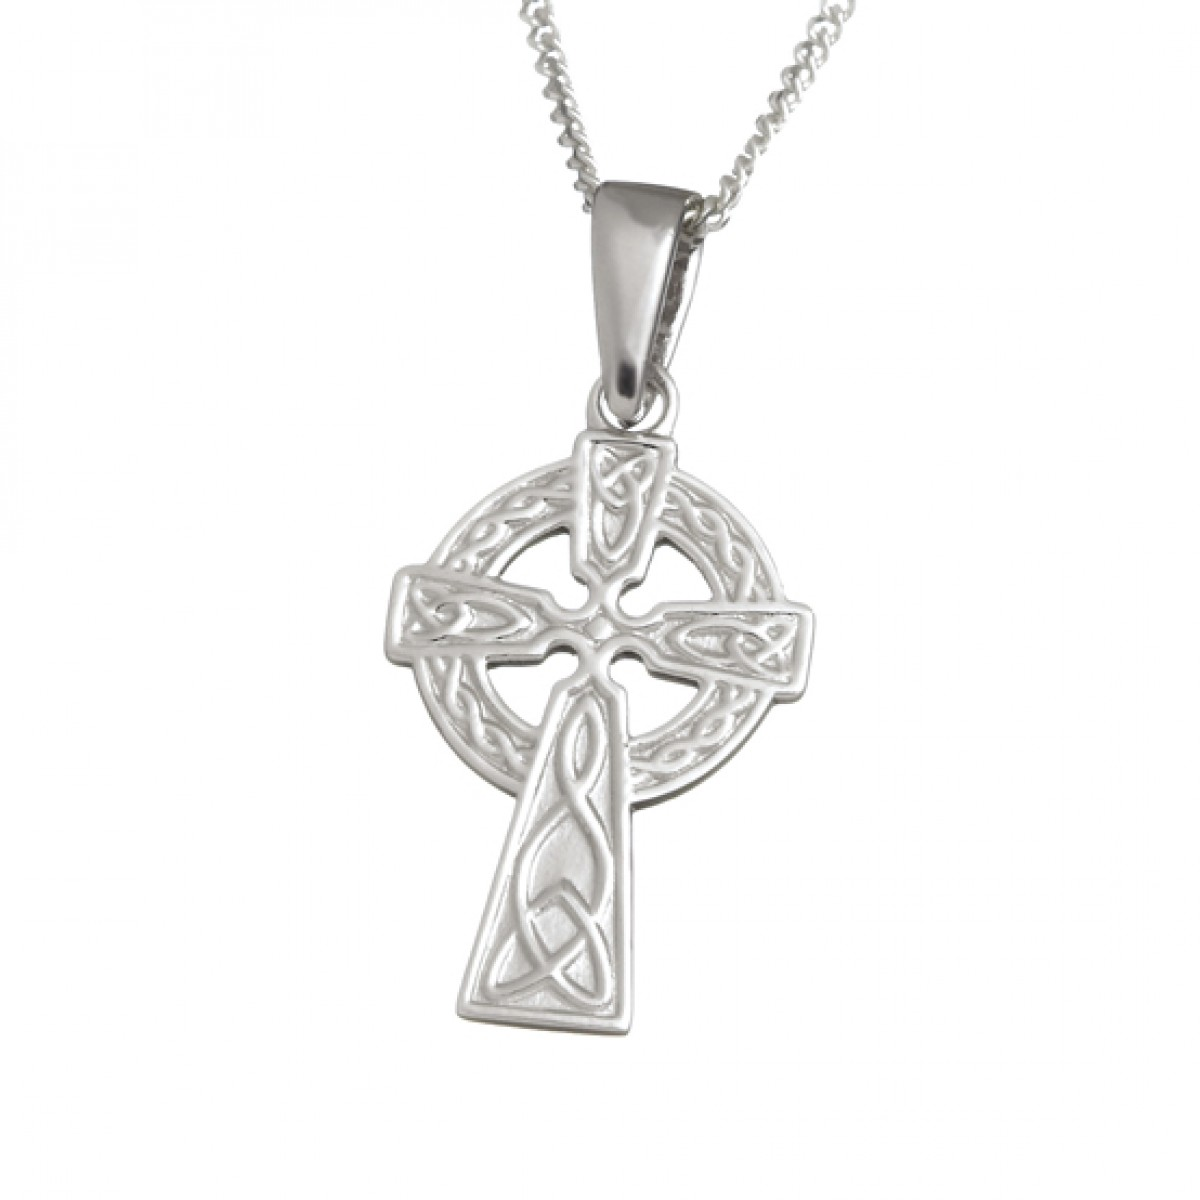 Small celtic cross pendant pixie treasures celtic shoppe small celtic cross pendant aloadofball Image collections